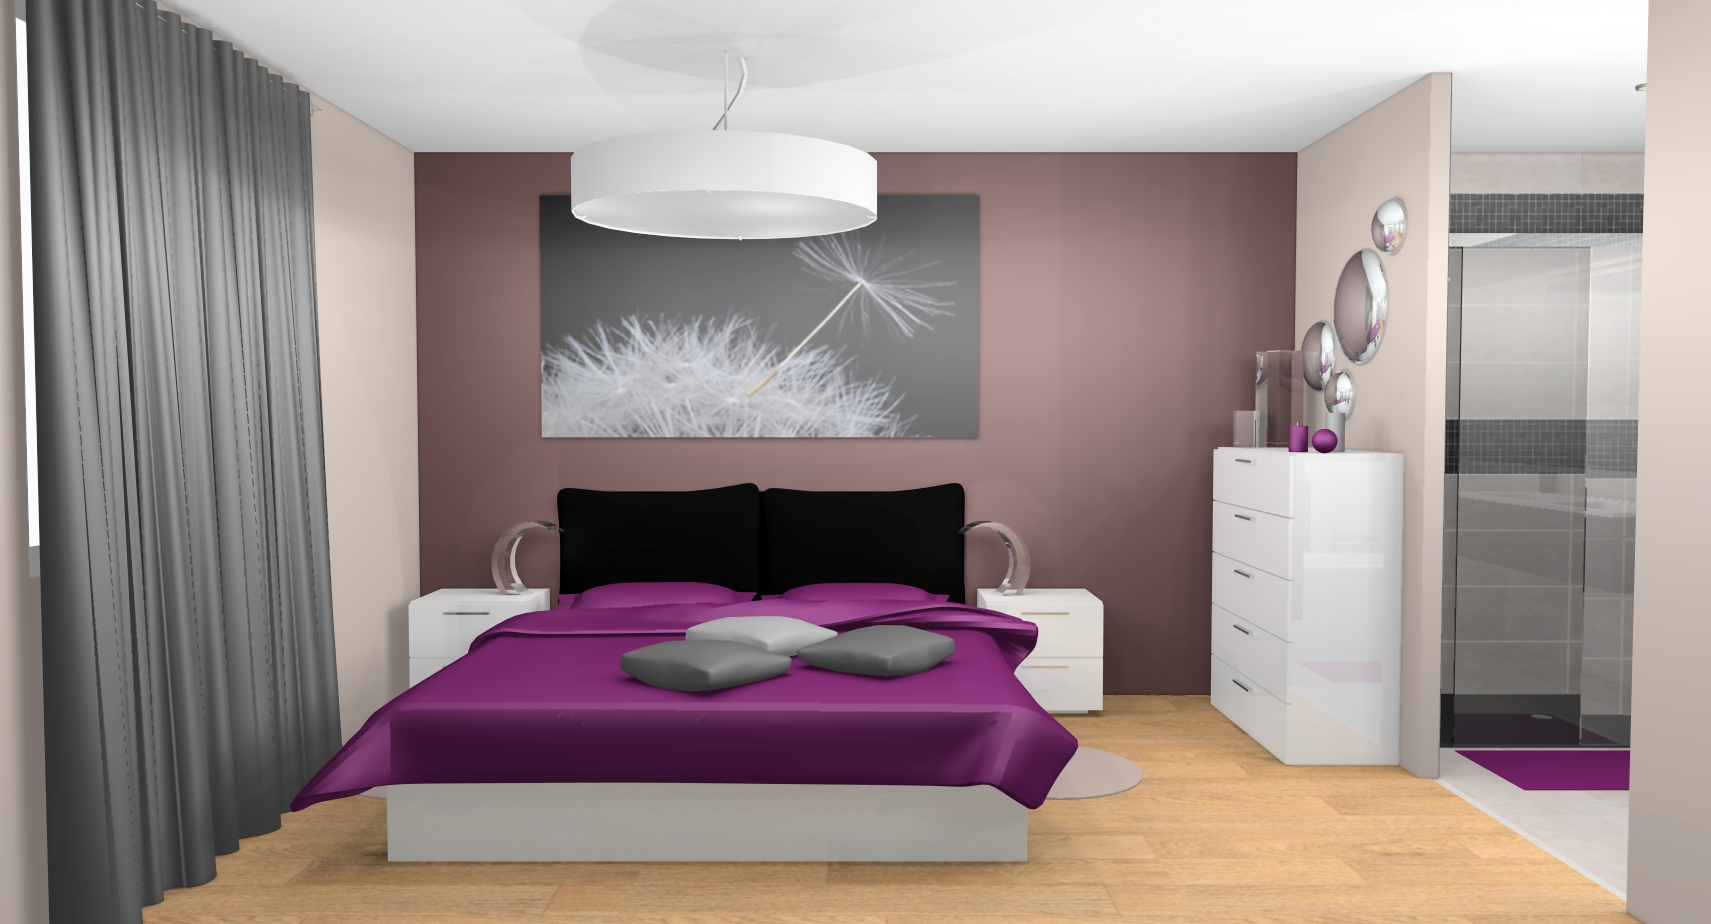 D coration chambre prune exemples d 39 am nagements - Decoration chambre parents ...